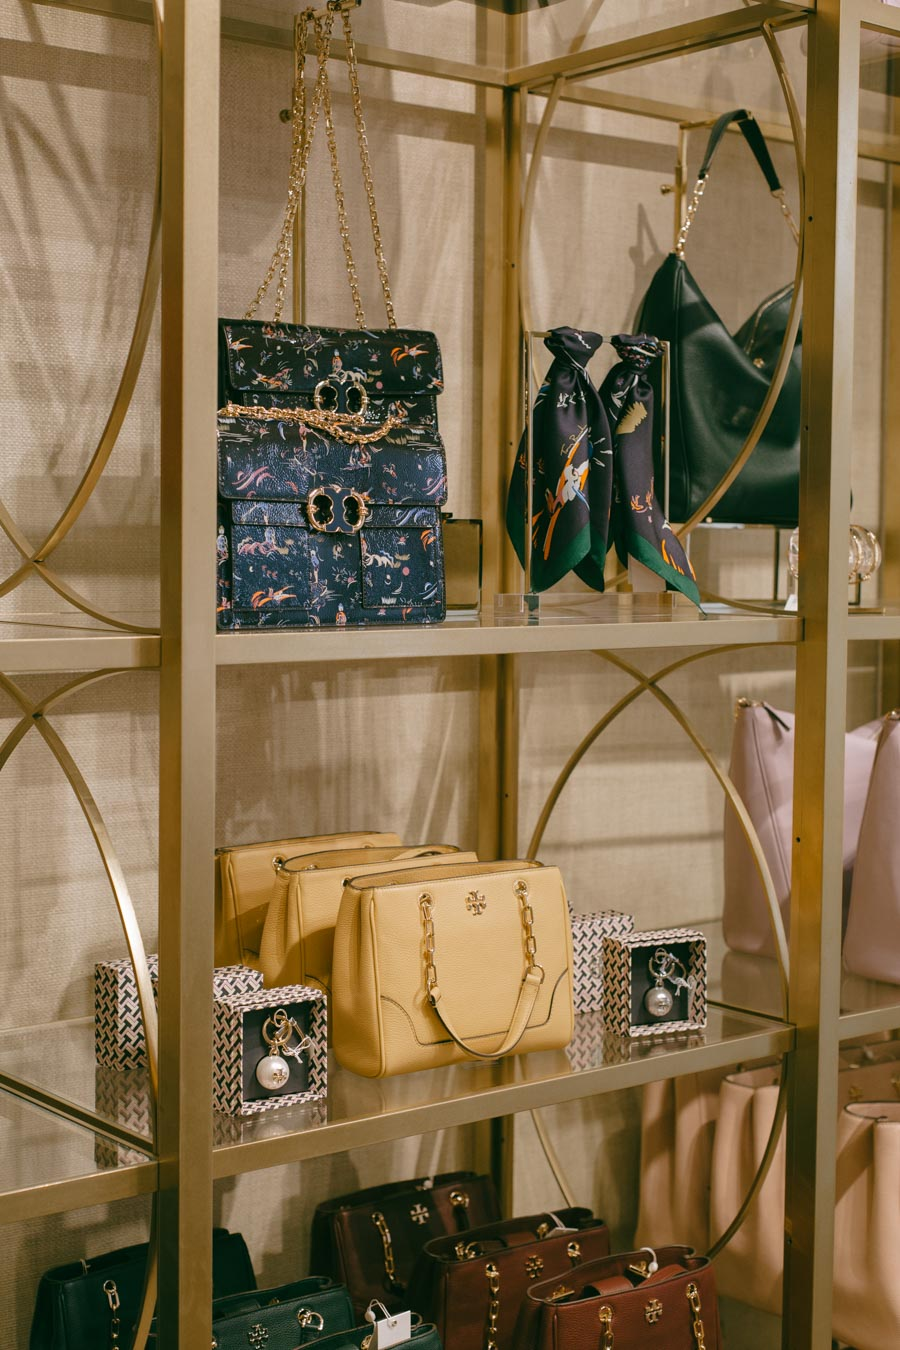 Tory Burch Outlet Store at Houston Premium Outlets